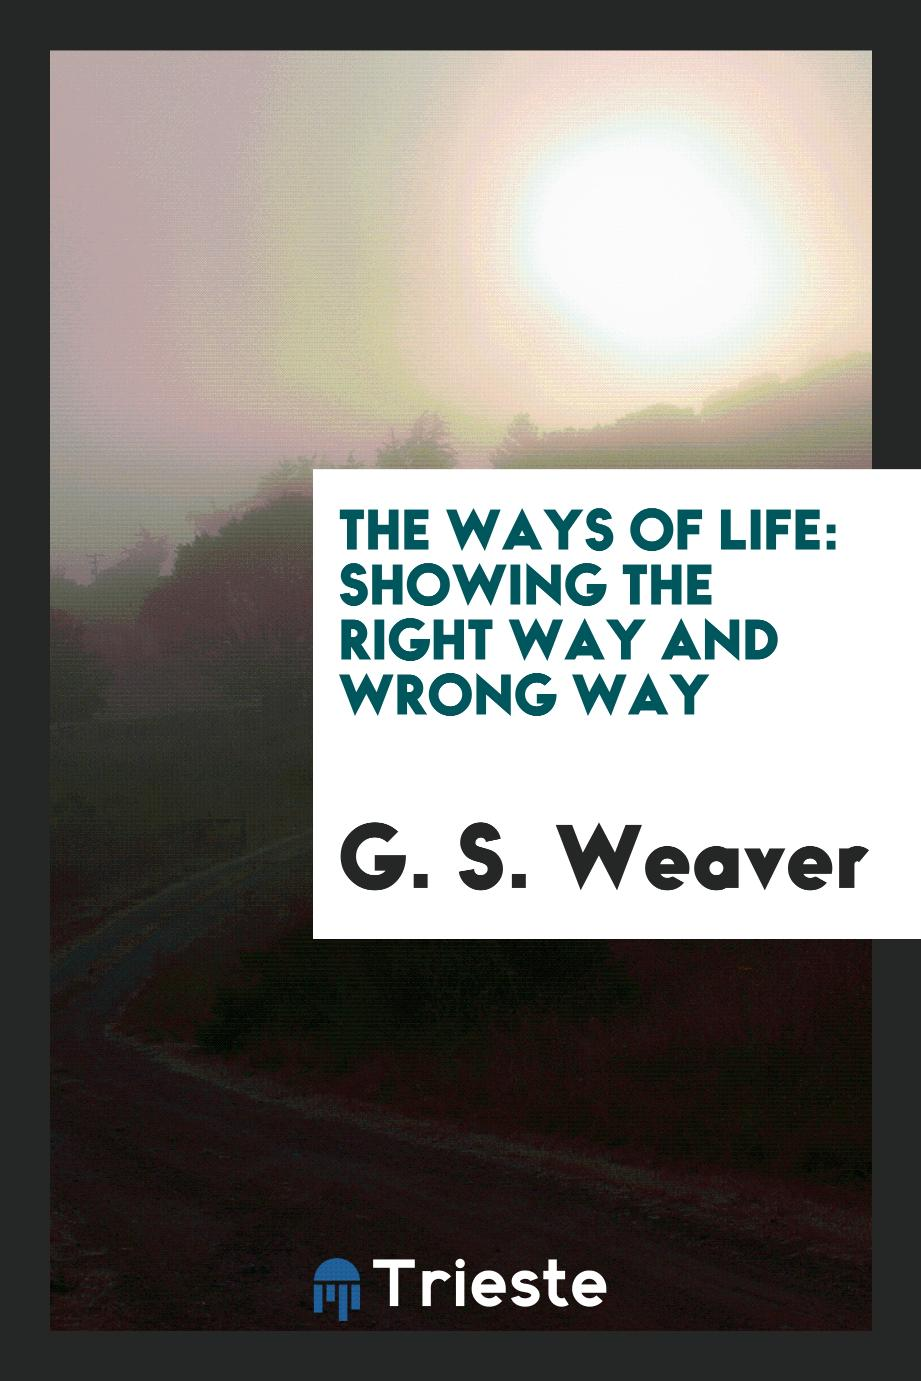 The Ways of Life: Showing the Right Way and Wrong Way